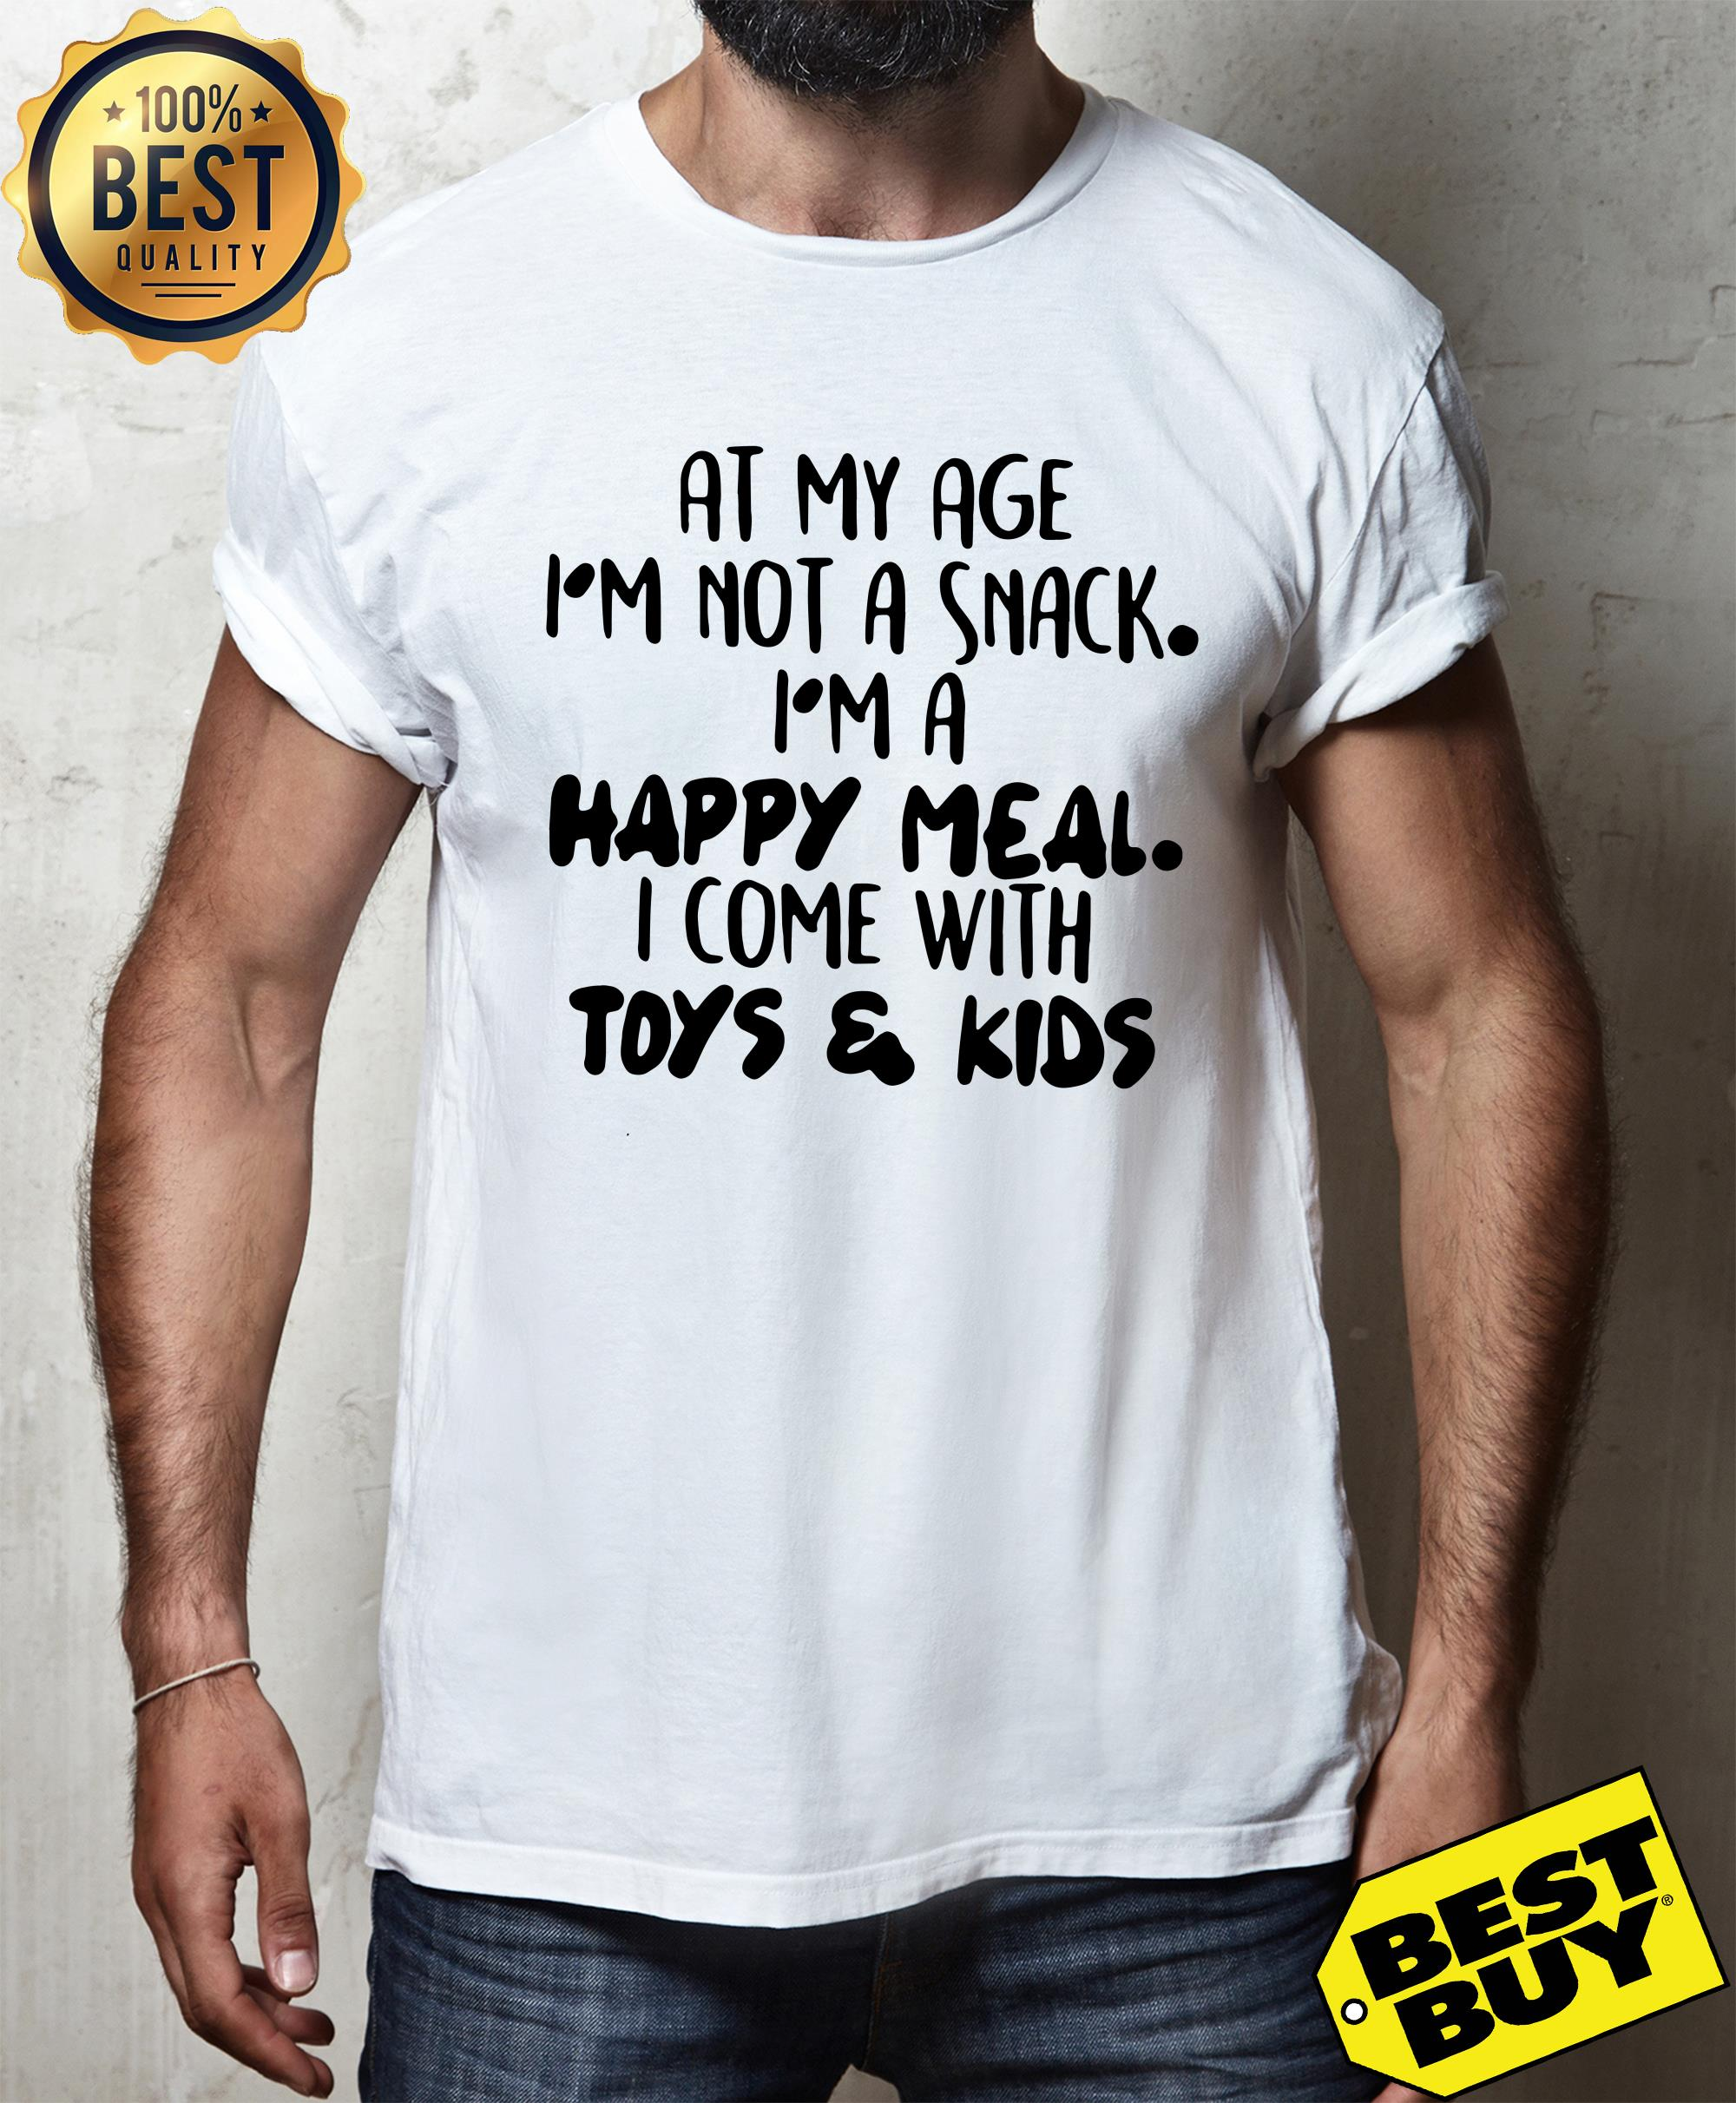 At my age i'm not a snack. i'm a happy meal. i come with toy and kids shirt